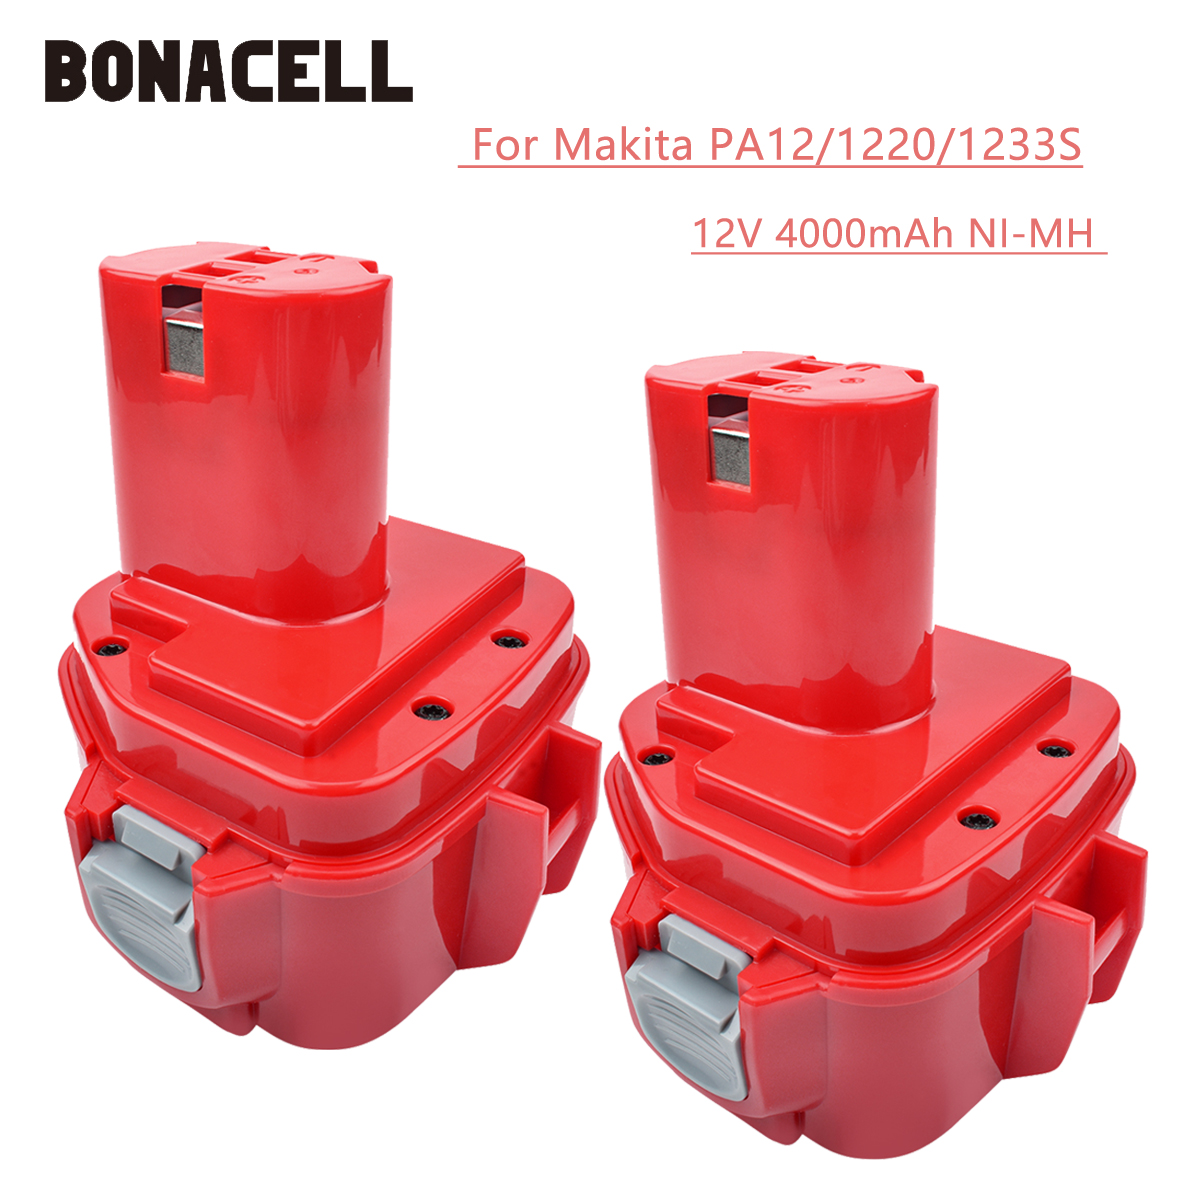 Bonacell 12v 2000mAh NI MH Replacement Battery for Makita 1220 PA12 1222 1233S 1233SA 1233SB 1235 1235A 1235B 192598 2 L30 in Replacement Batteries from Consumer Electronics